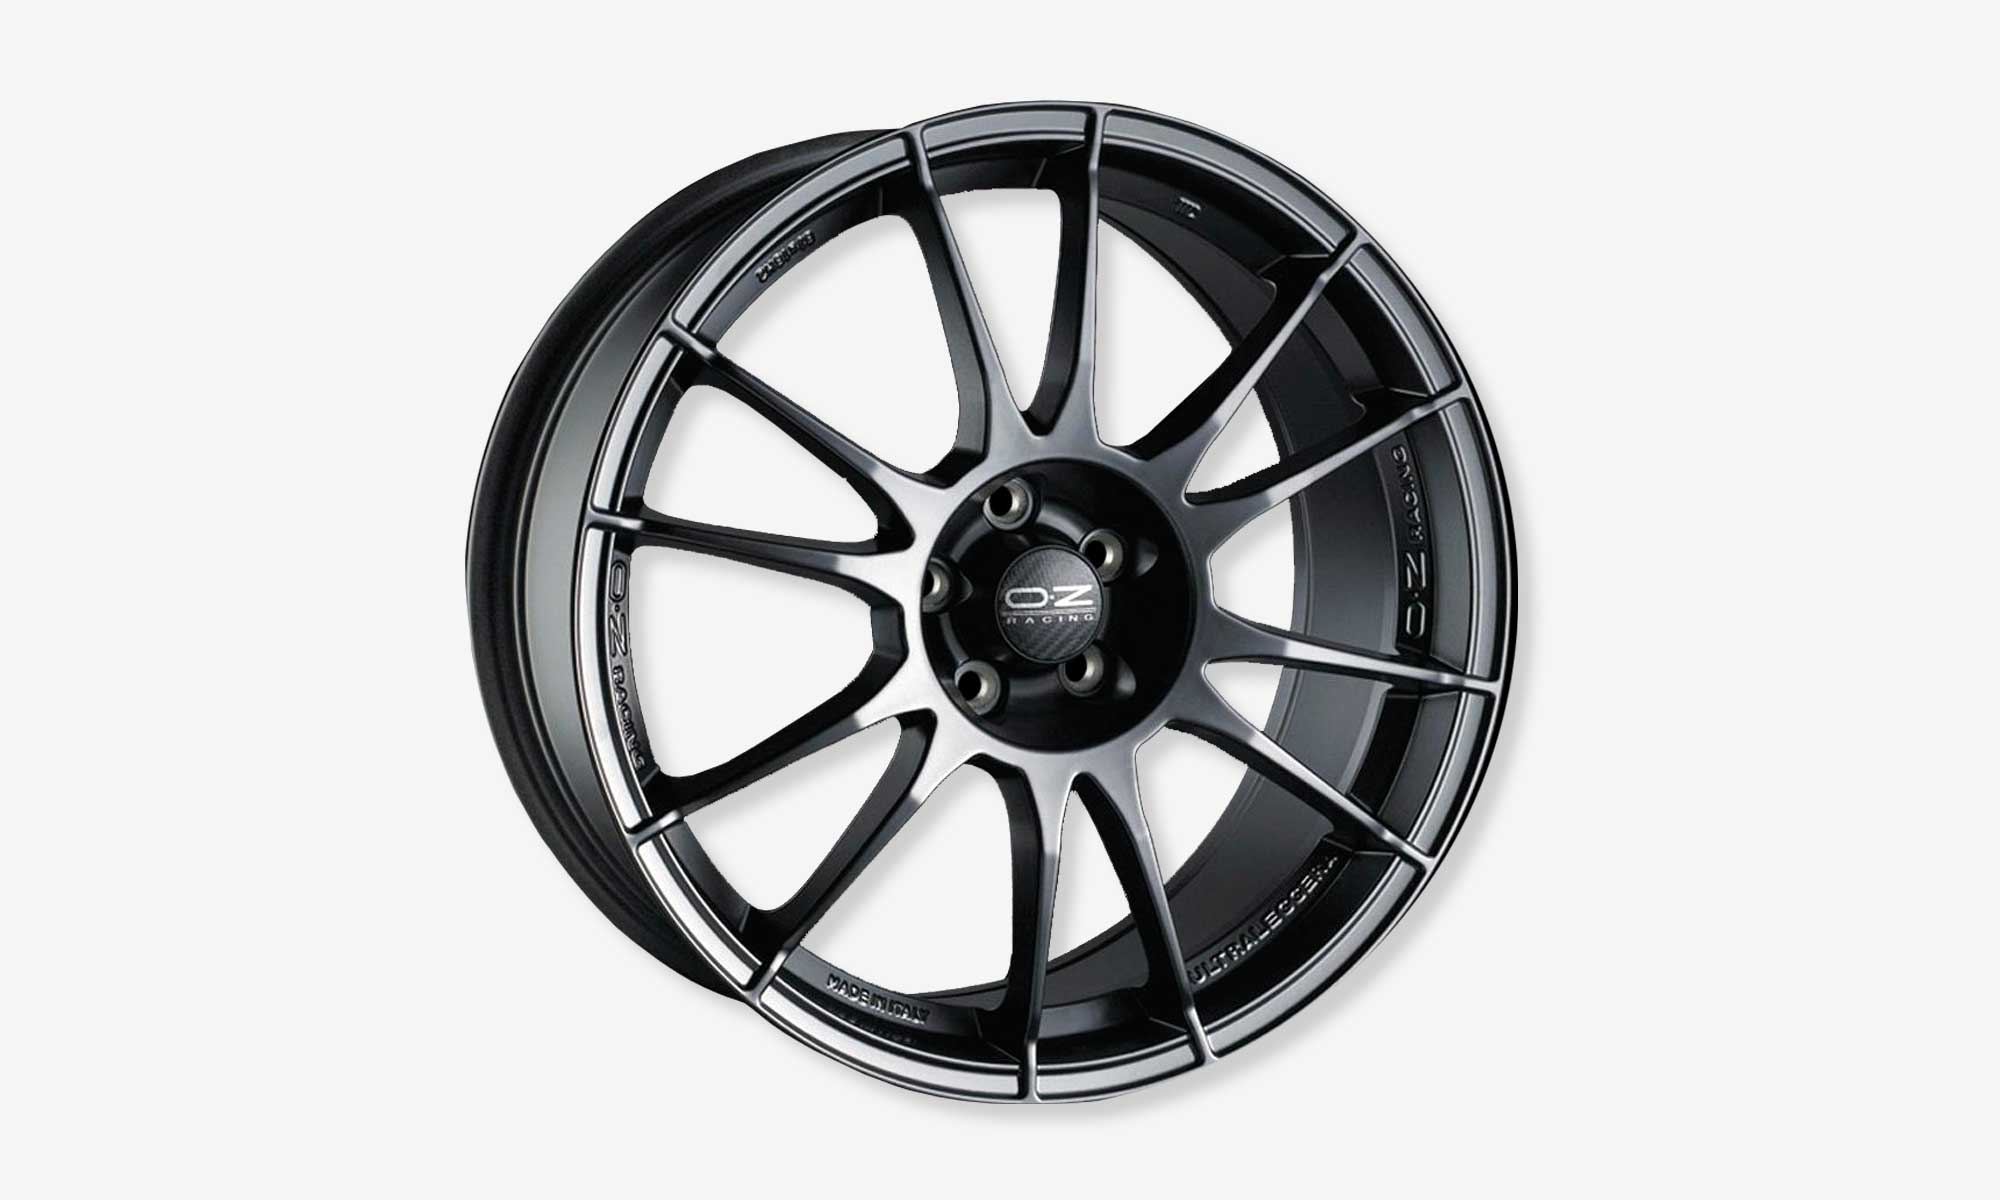 Alloy wheels Ultraleggera HLT for Maserati 4200 EVO